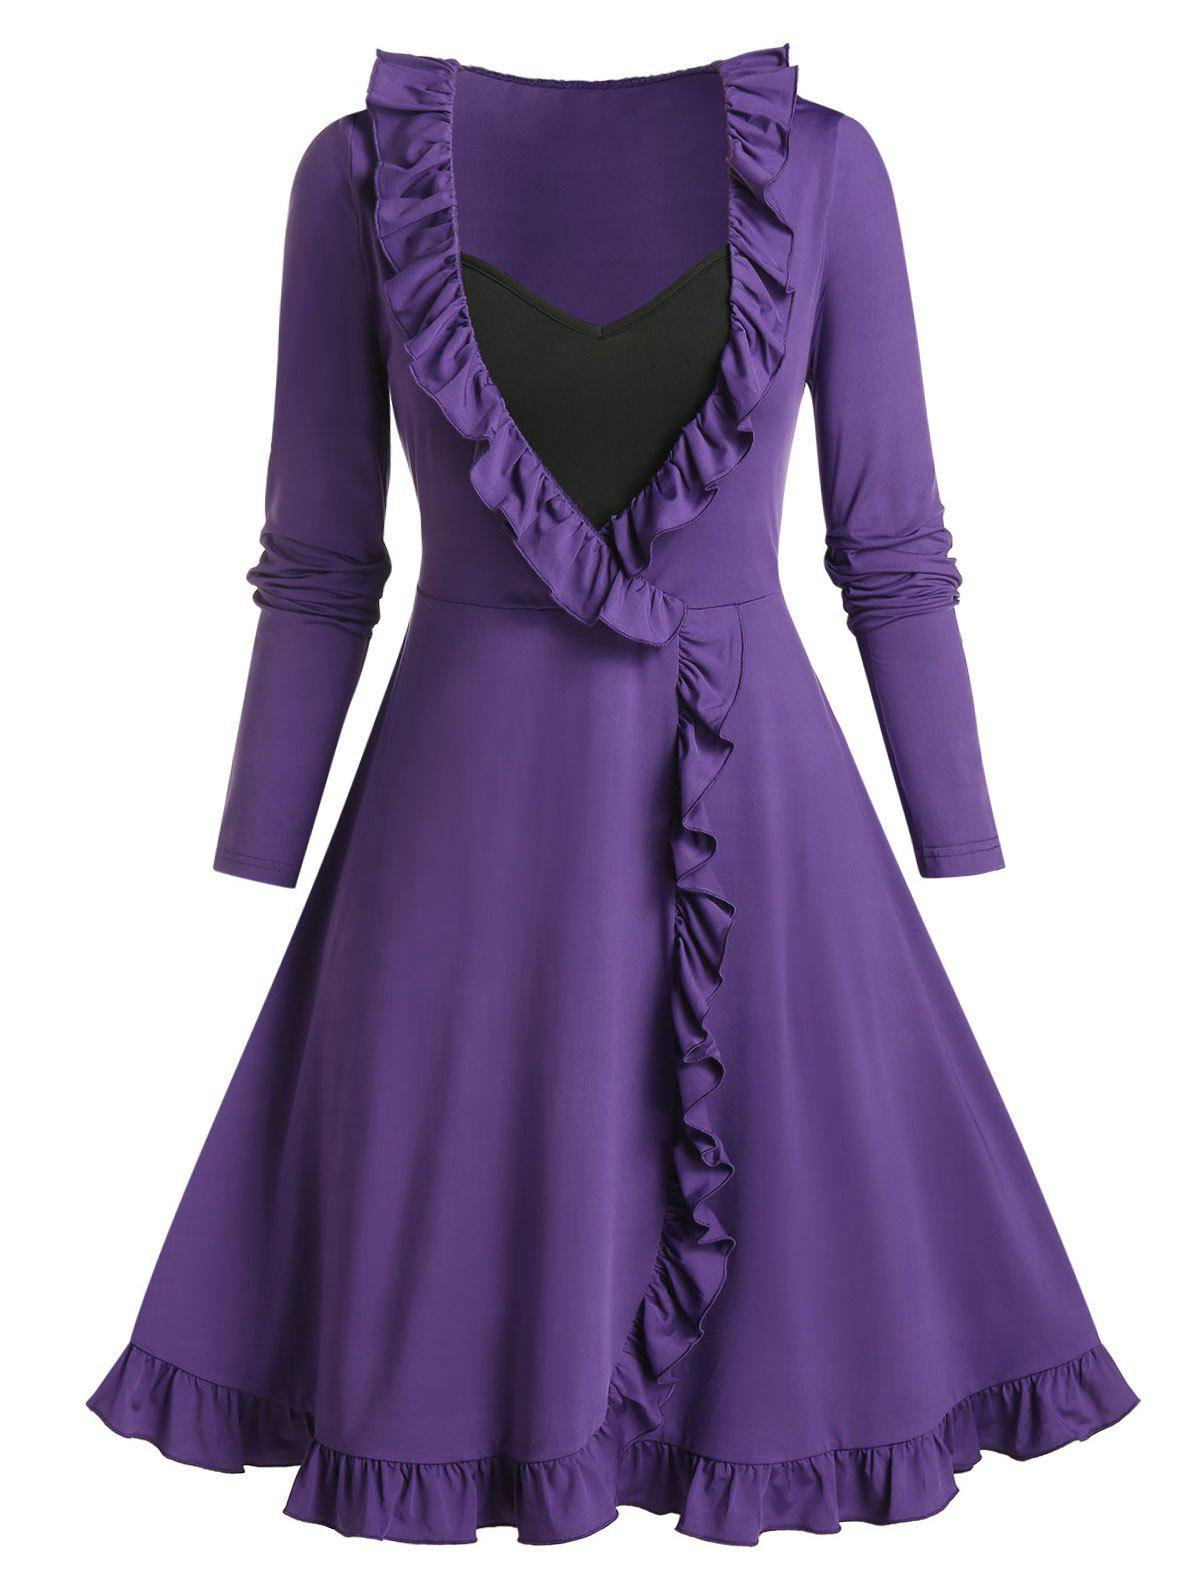 Plus Size Ruffles 2 In 1 A Line Dress - HELIOTROPE PURPLE 5X